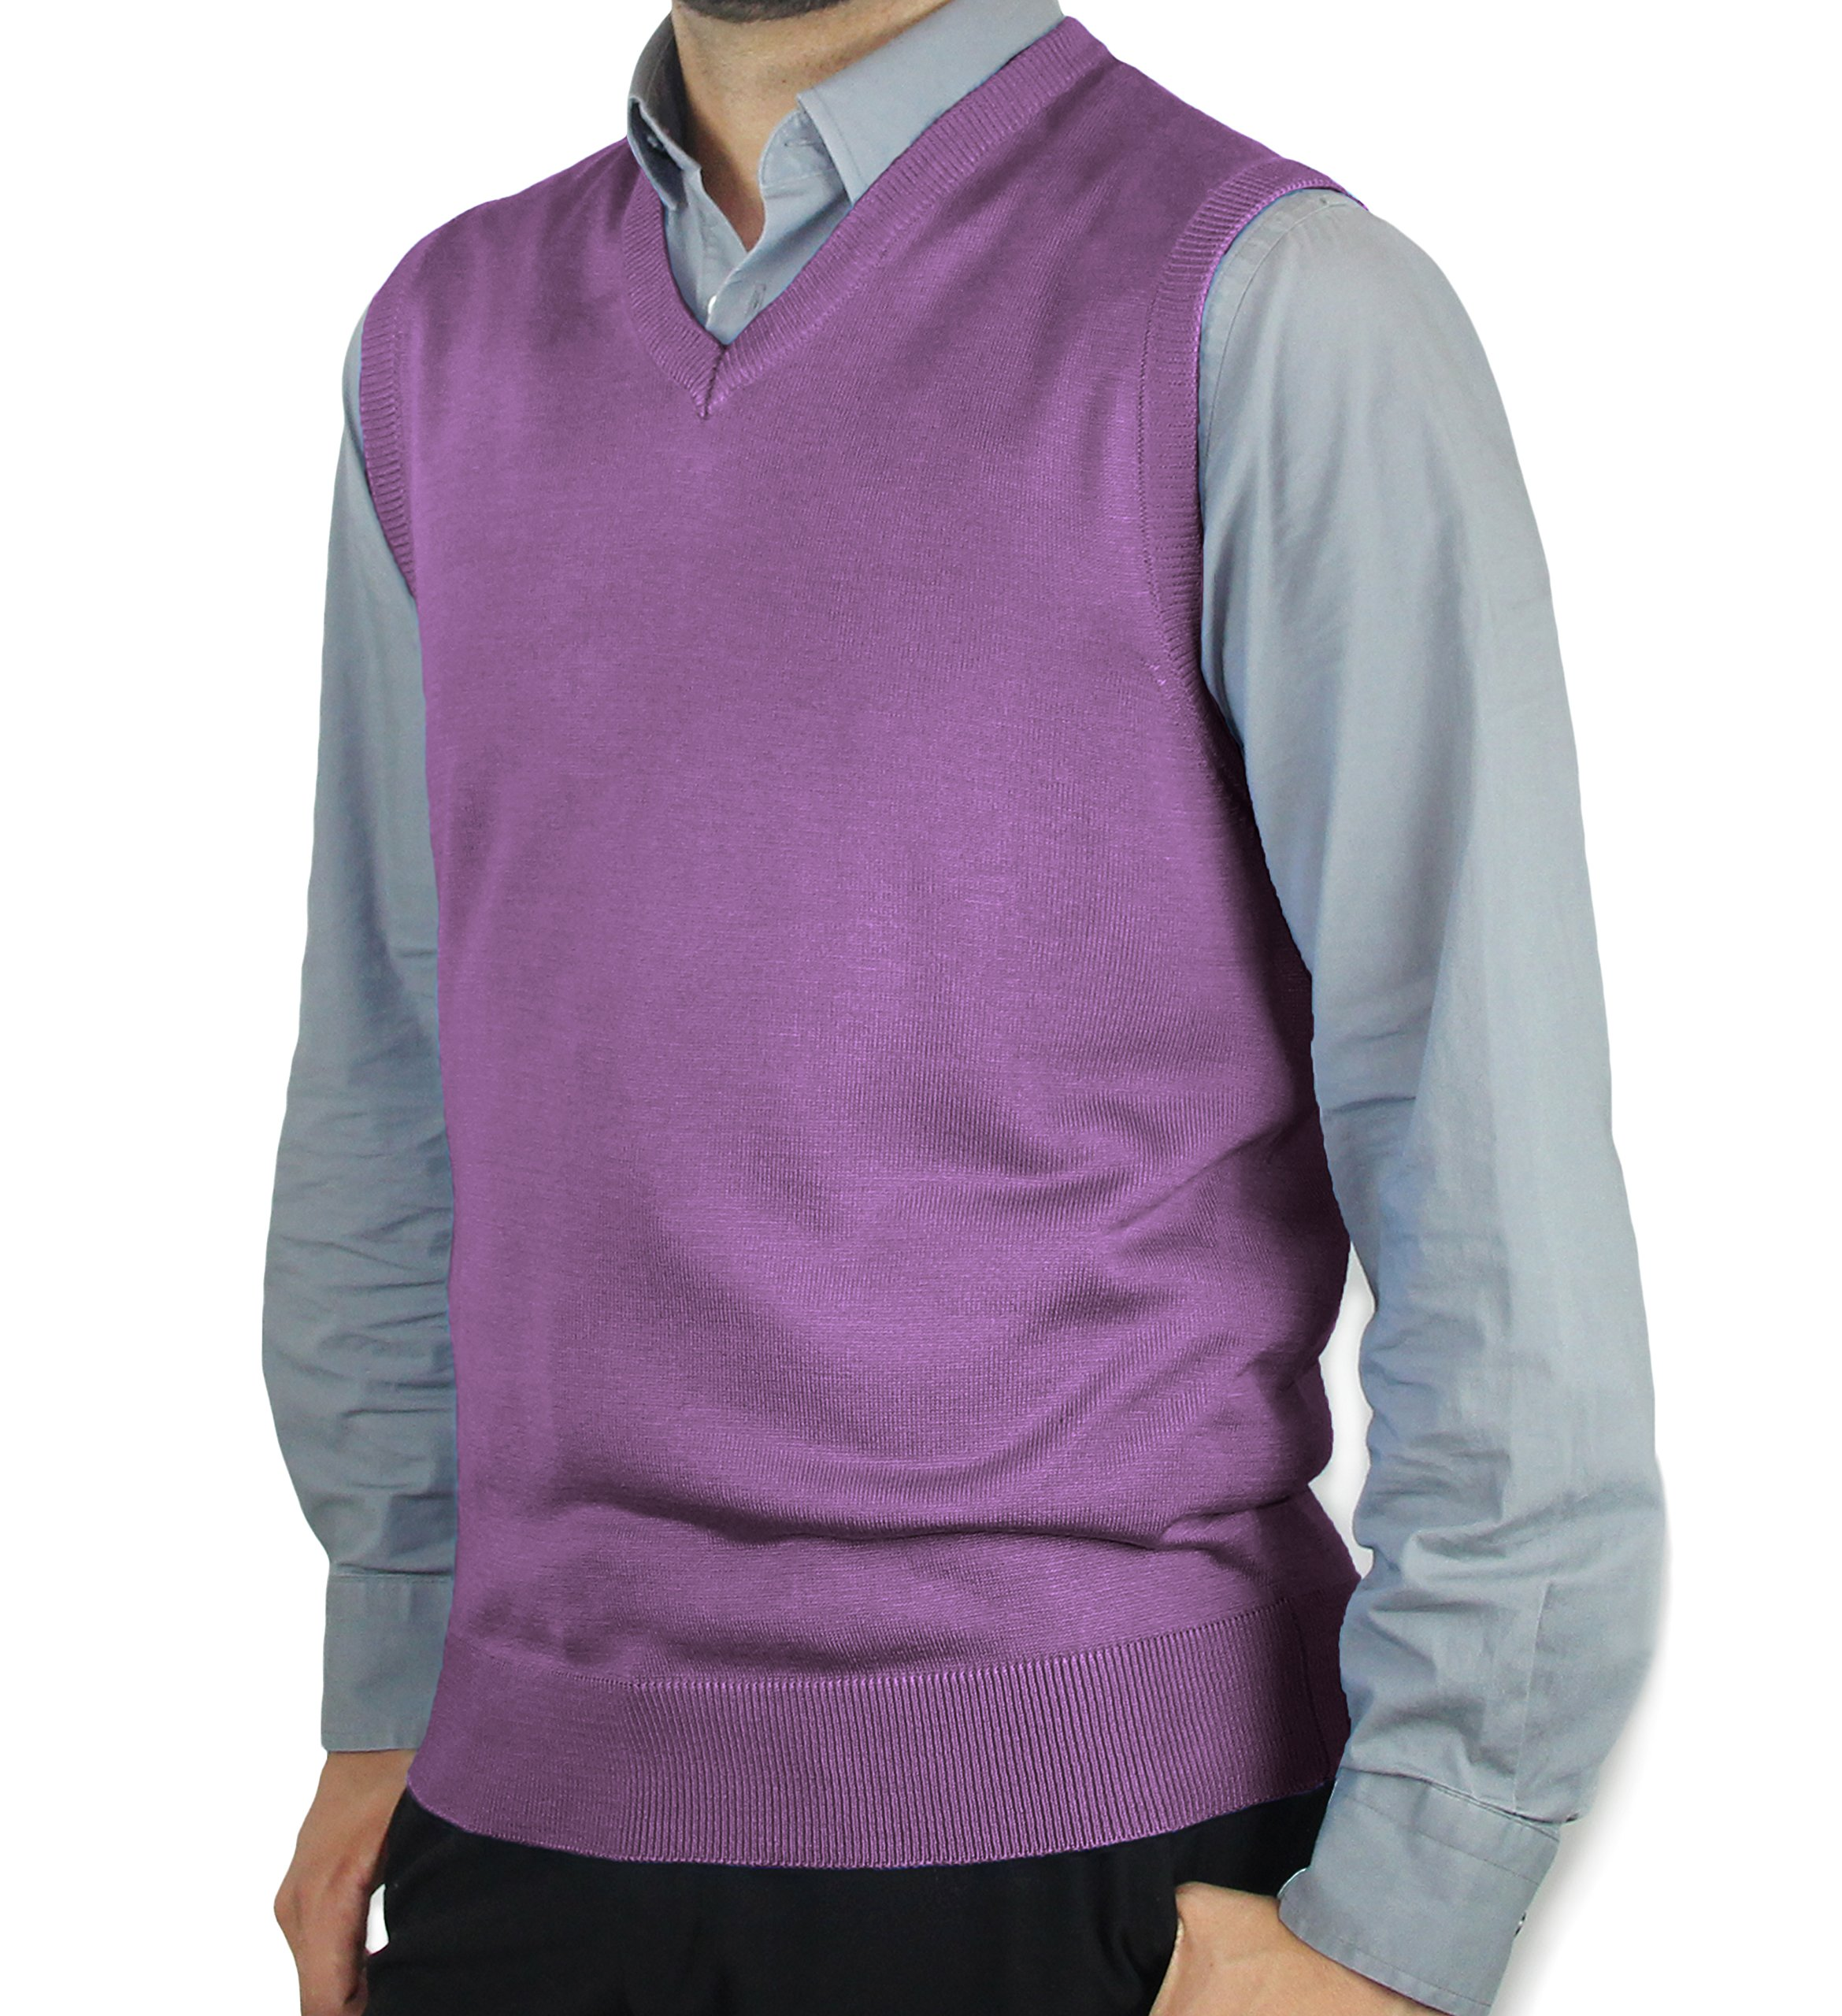 Blue Ocean Solid Color Sweater Vest-Small